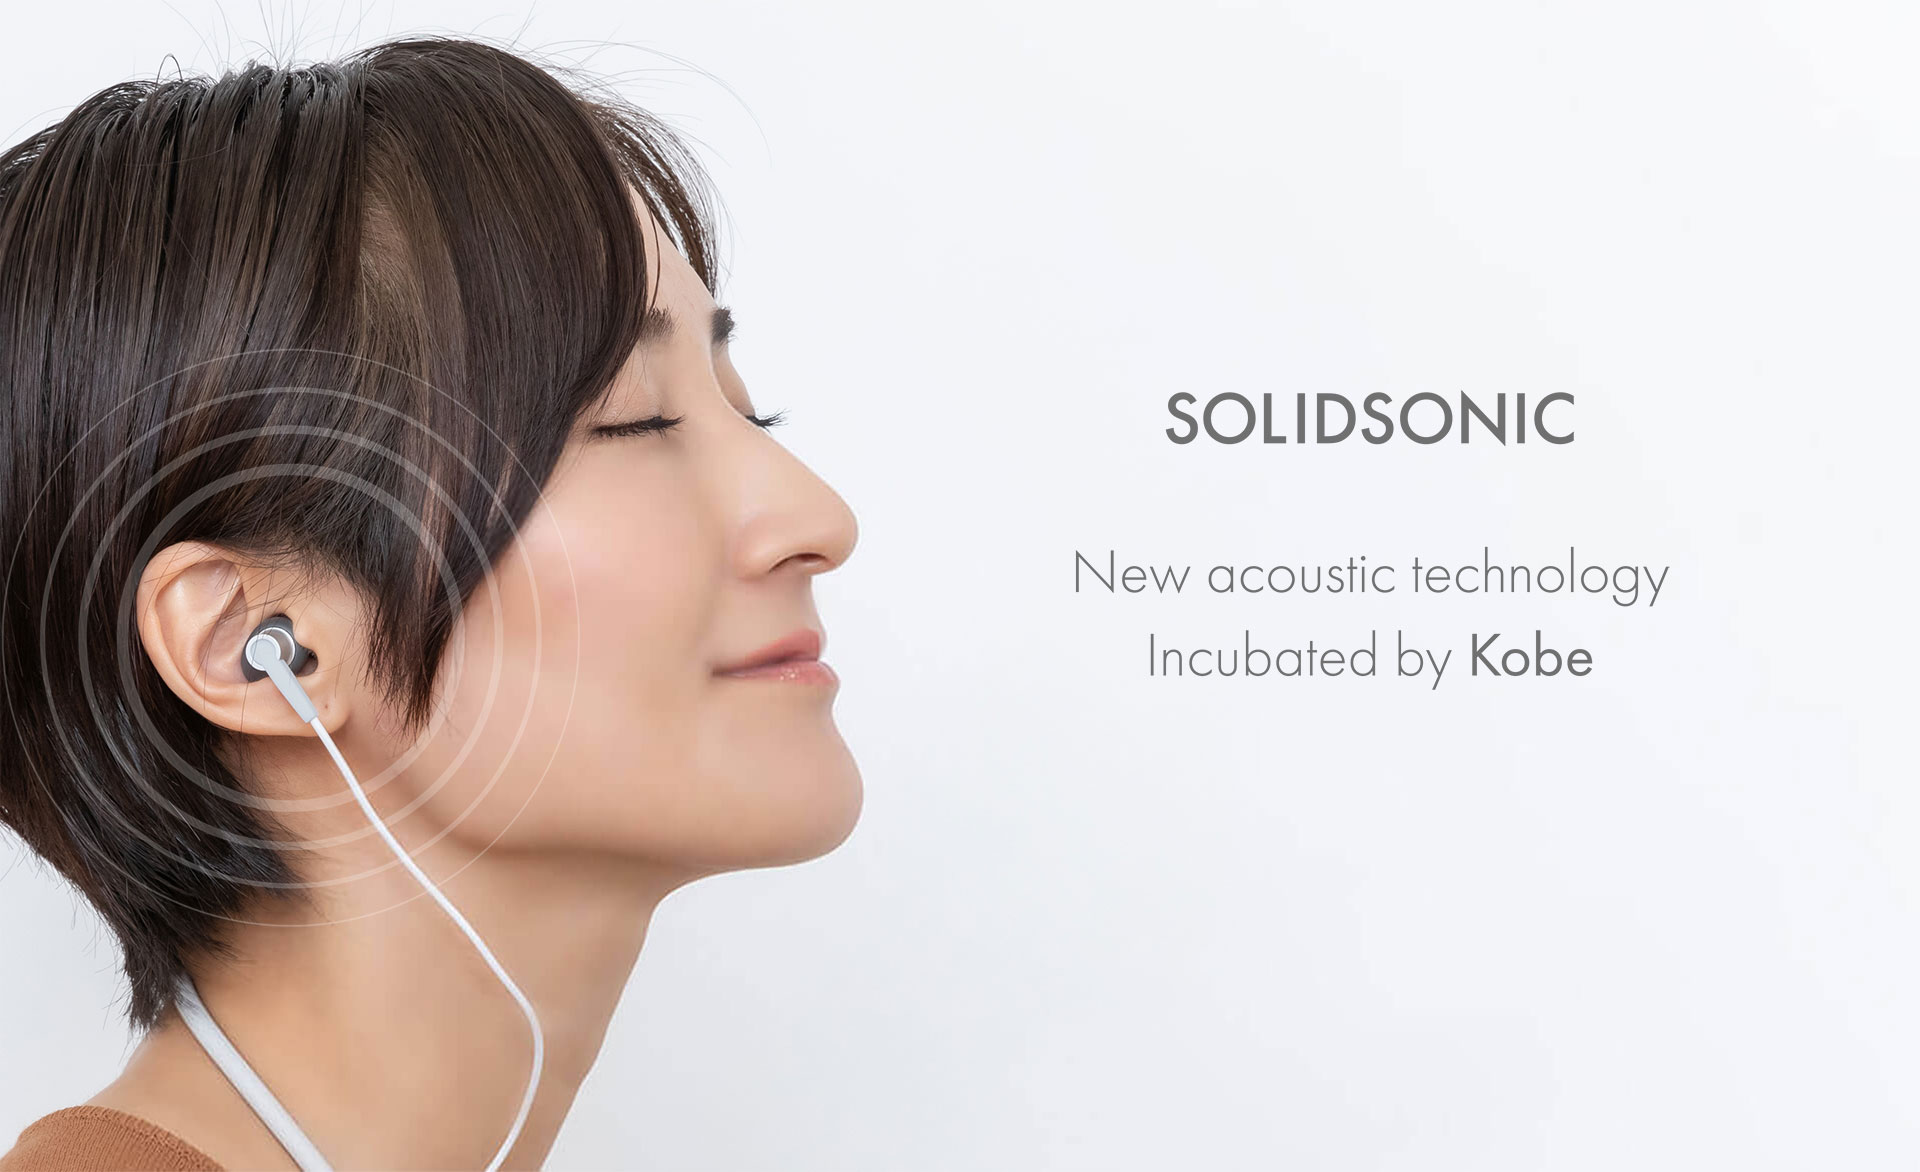 SOLID SONIC New acoustic technology Incubated by Kobe